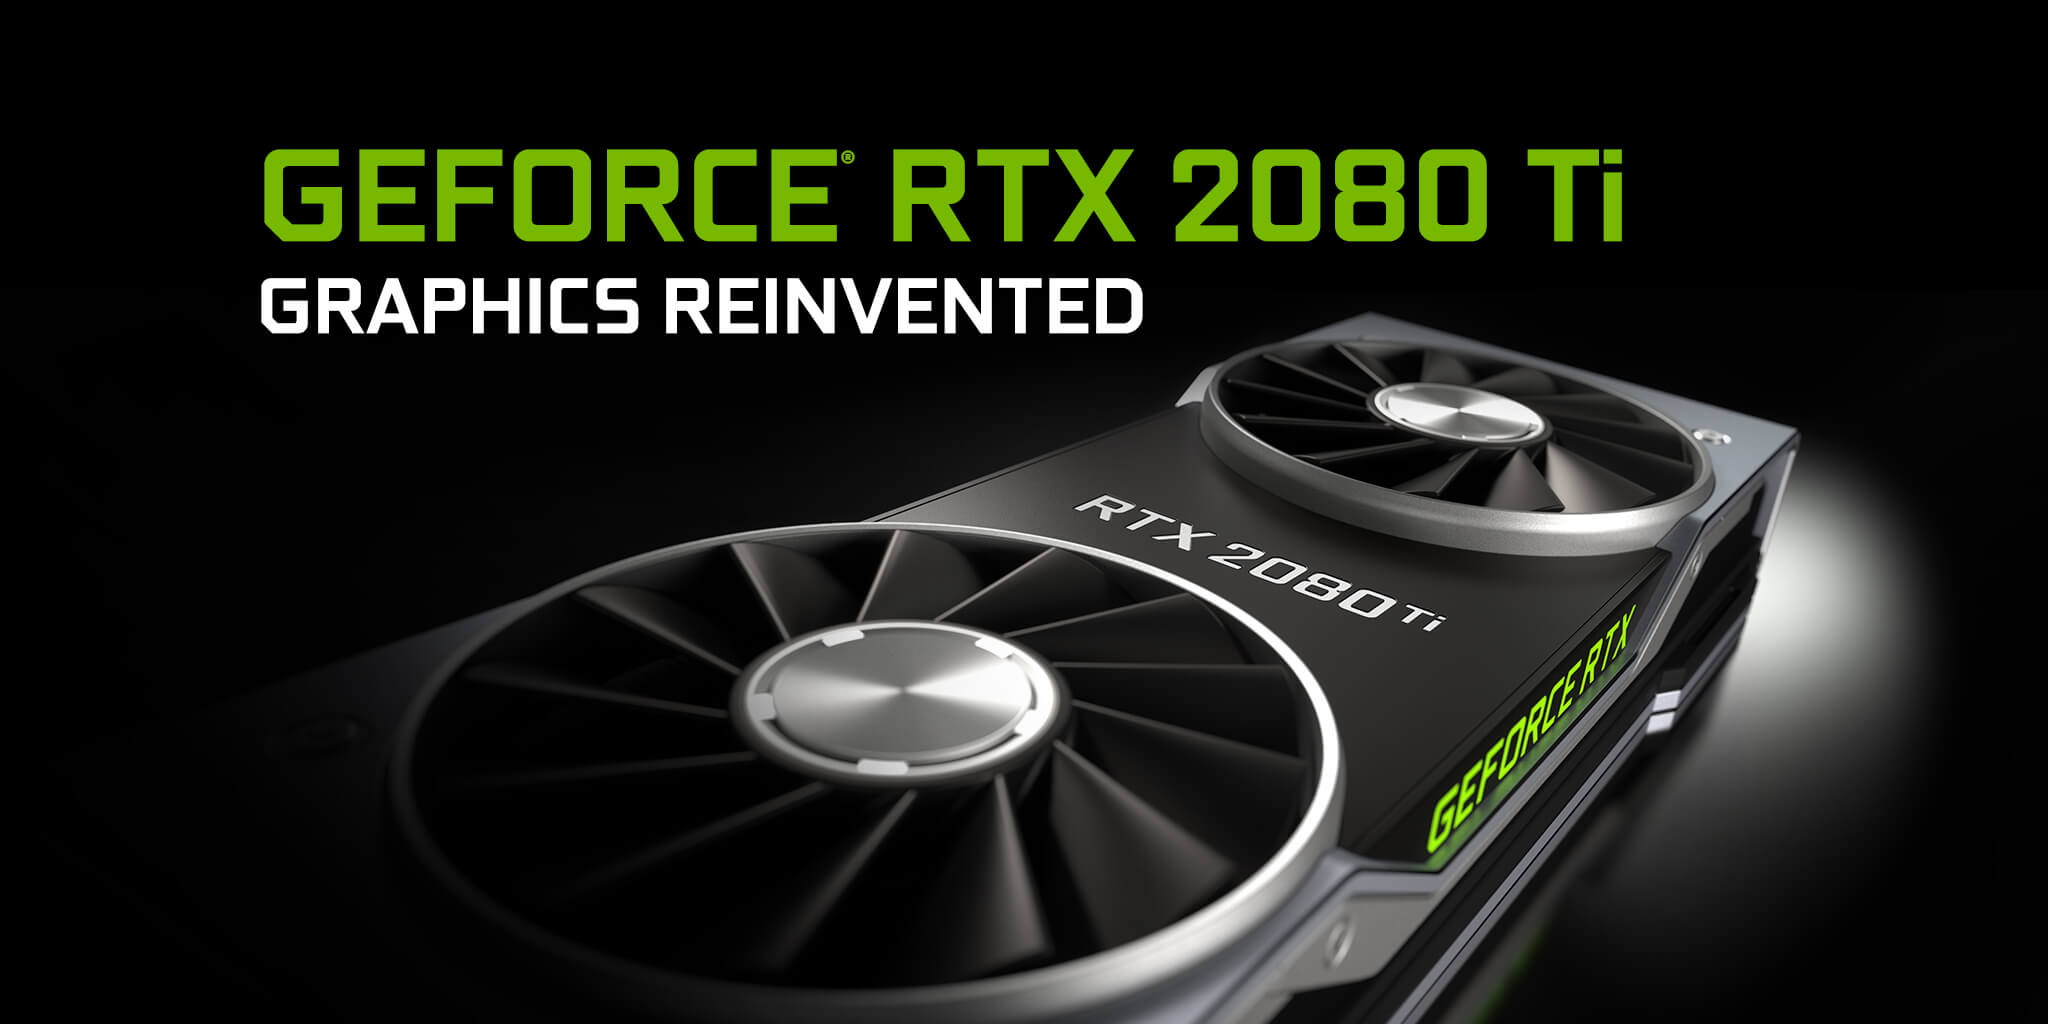 NVIDIA GeForce RTX 2080 Ti Delisted Feature